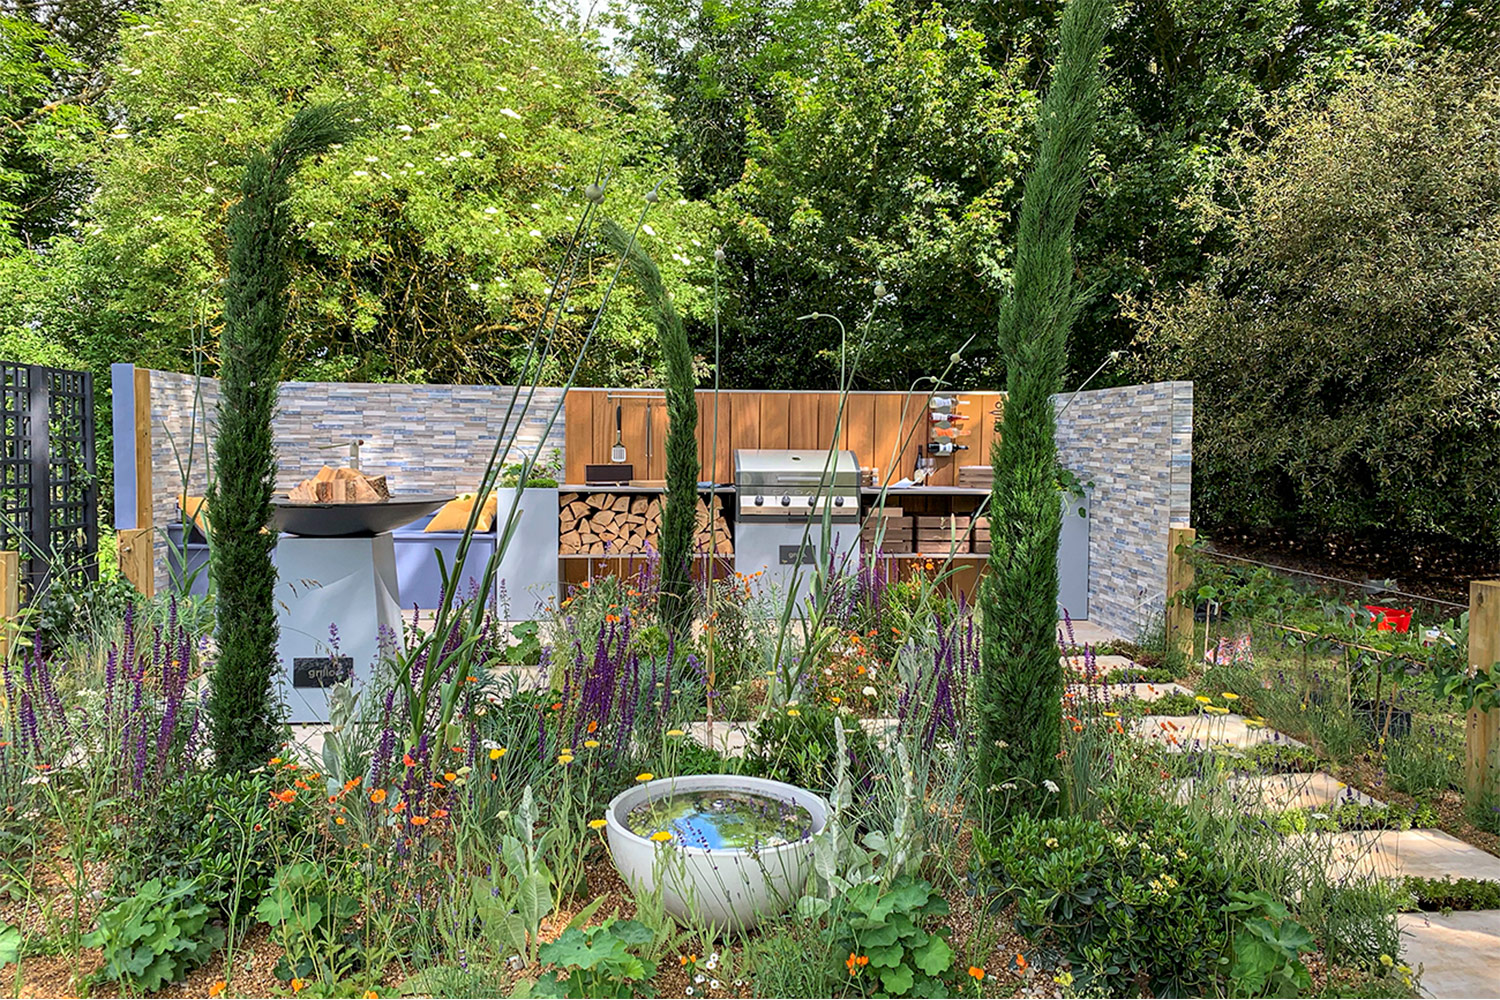 Grillo Forge In a show garden